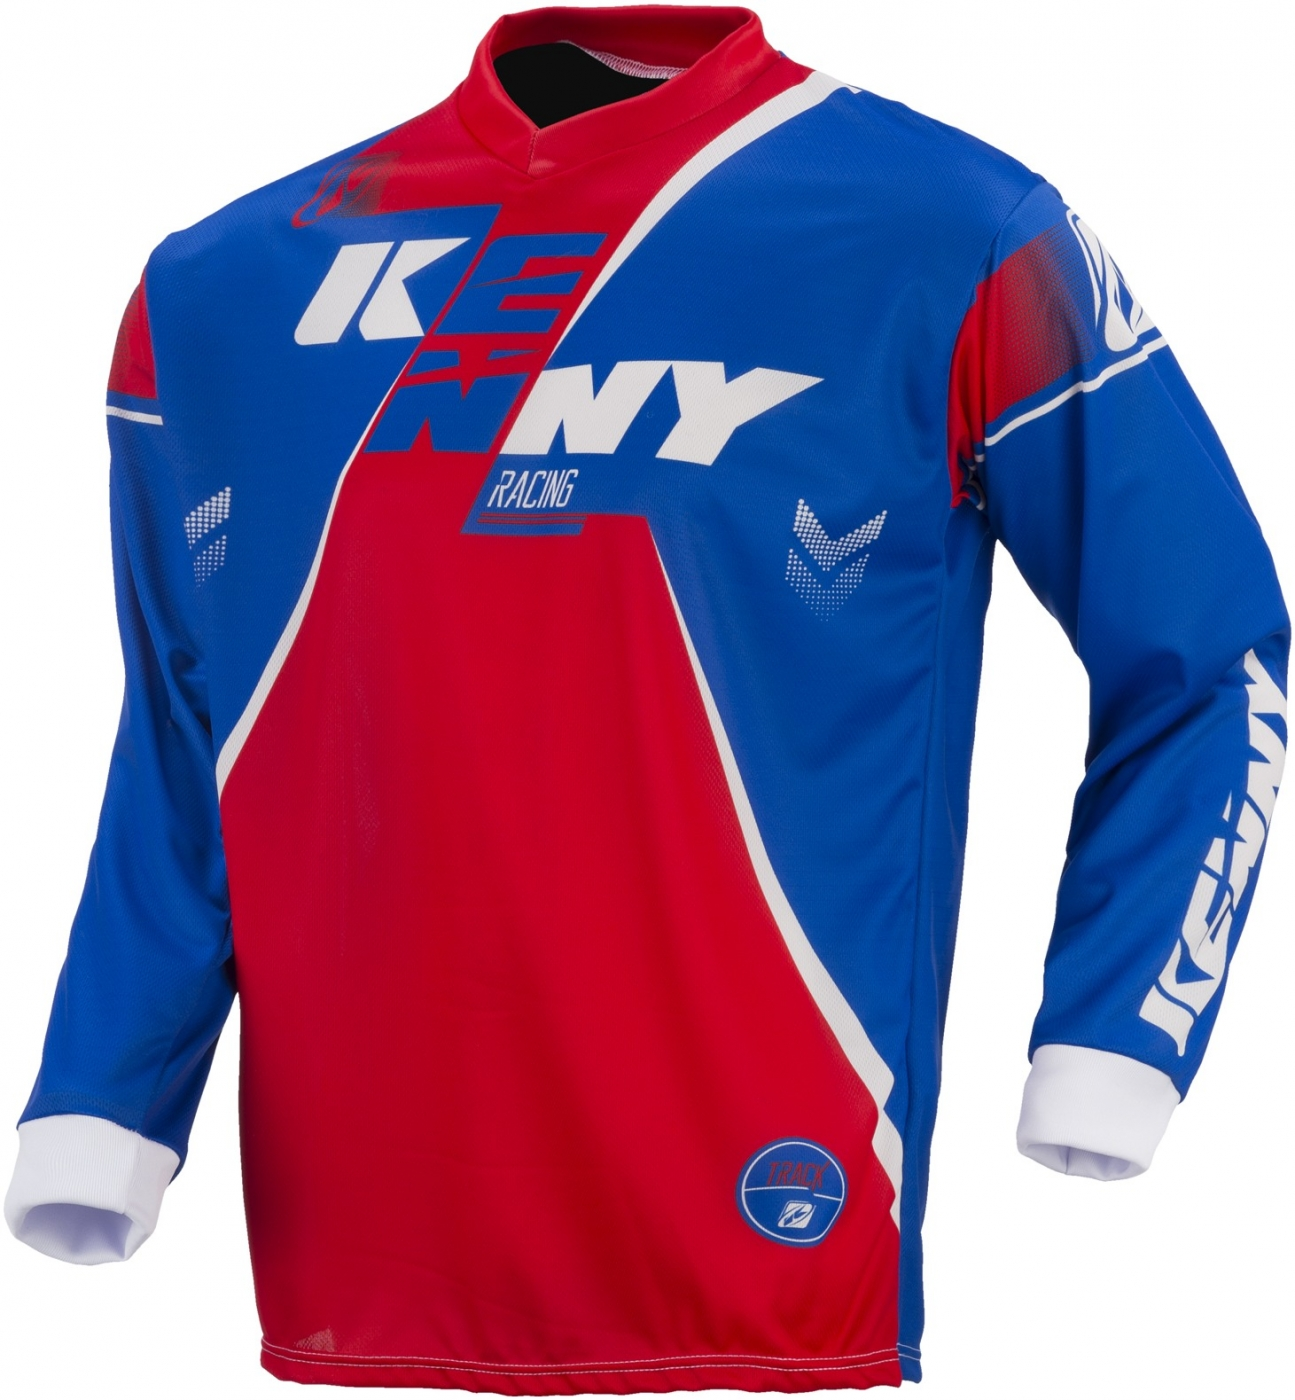 KENNY dres TRACK 17 blue/red